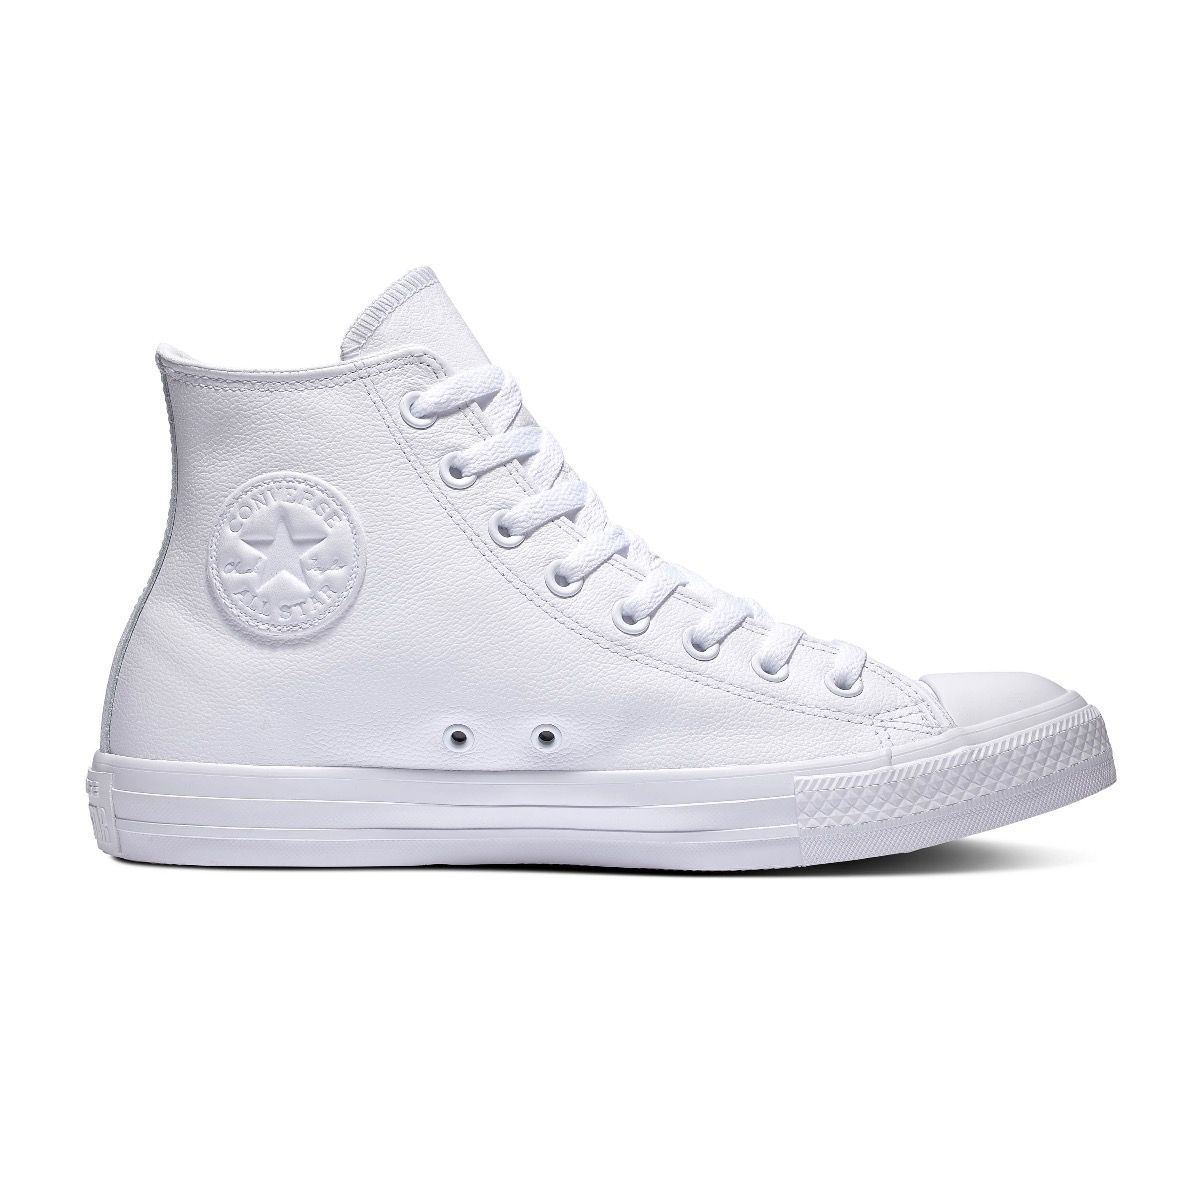 Converse All Stars Leather Hoog 1T406 Wit-39.5 maat 39.5